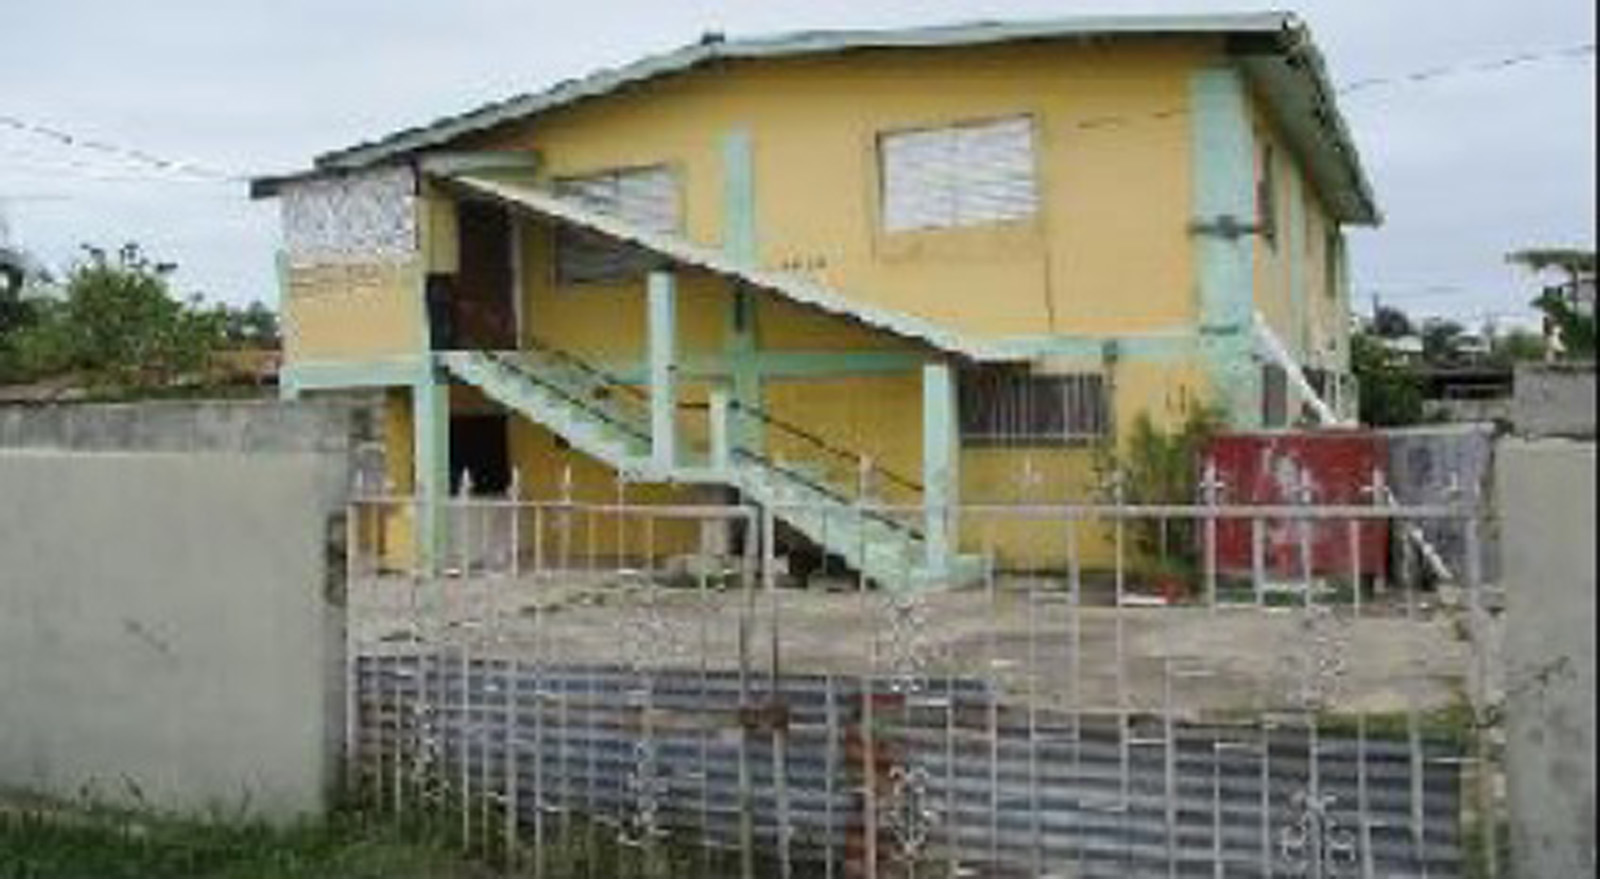 House for Sale in Belize City